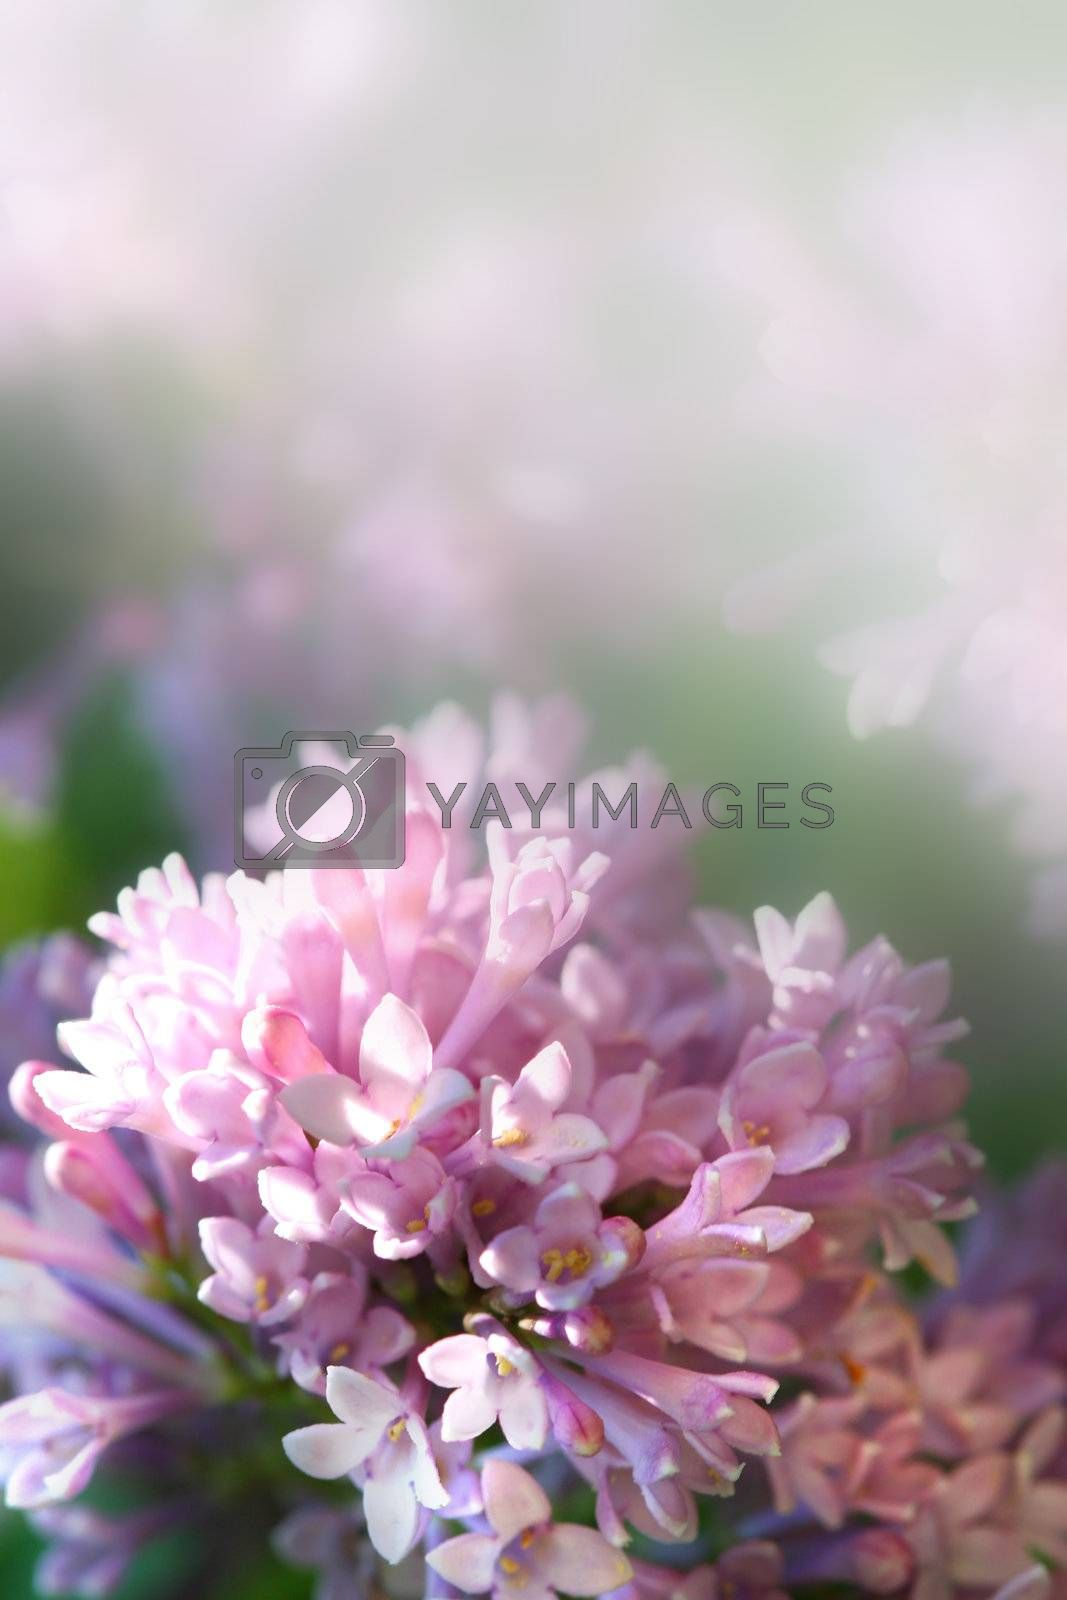 Closup of lilac flower with faded background